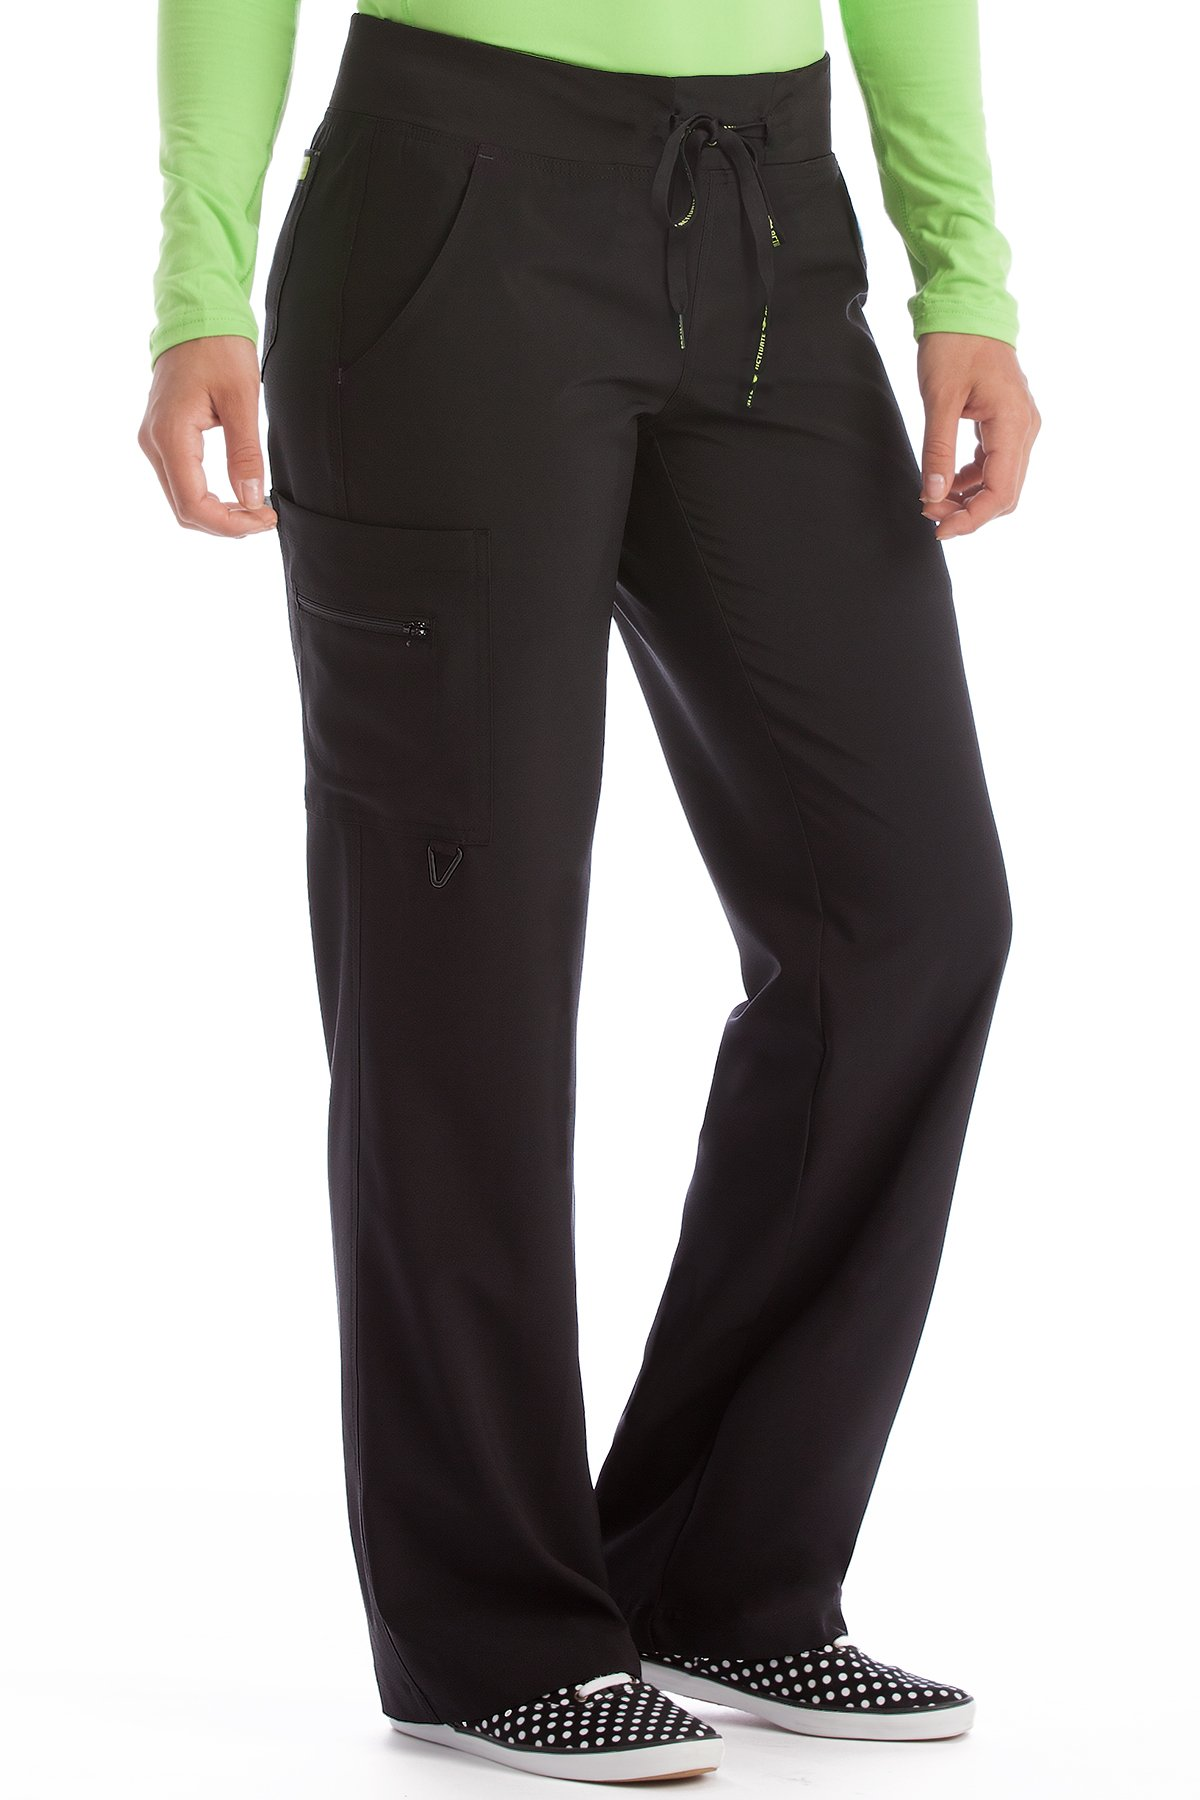 Med Couture Women's 'Activate' Transformer Scrub Pant, Black, X-Large Tall